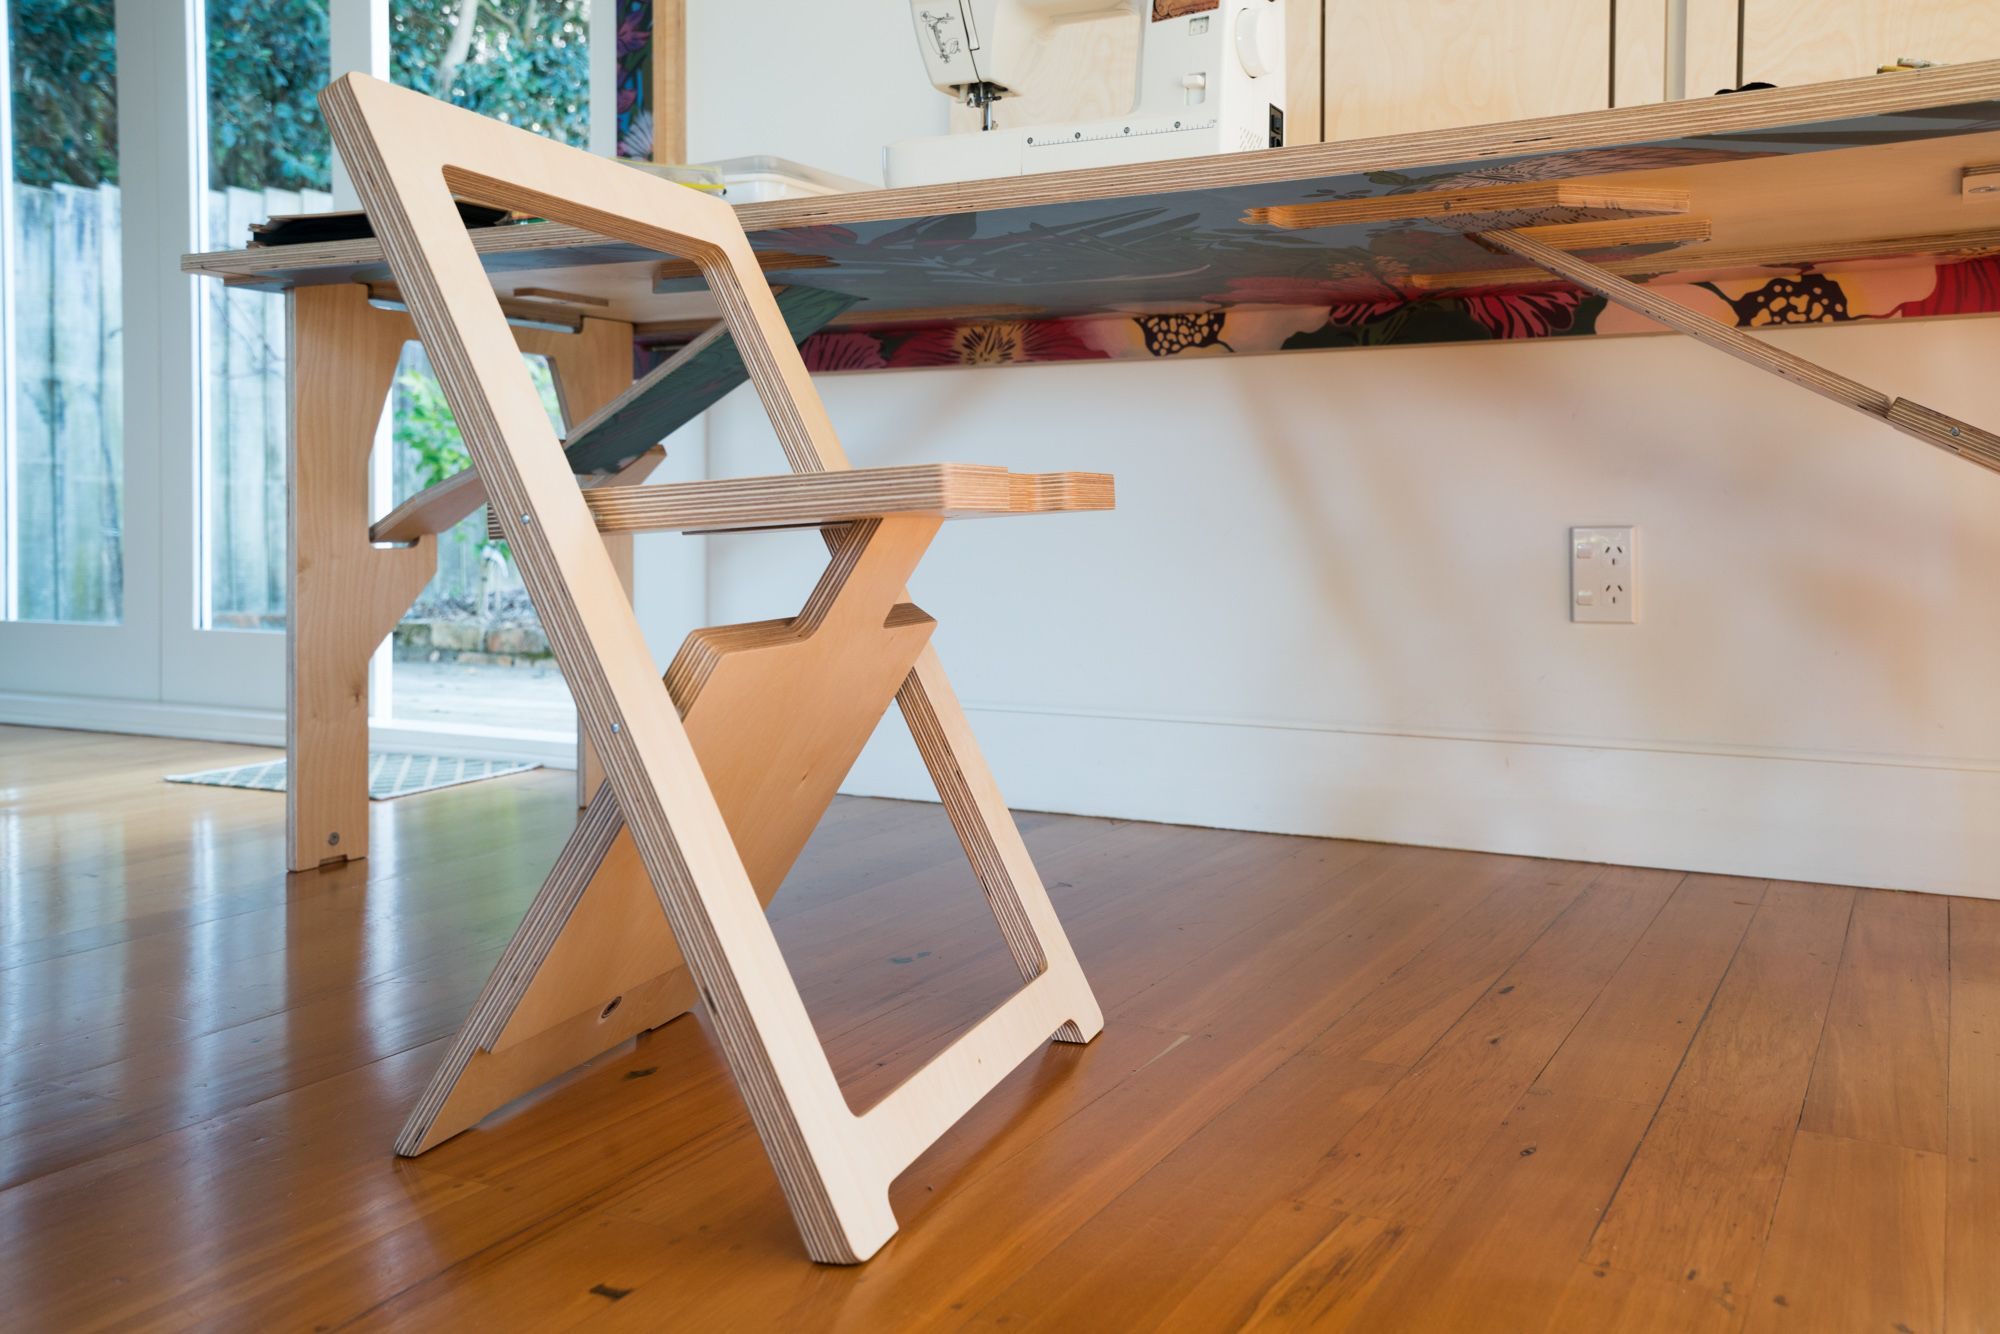 Hang extra folding chairs on the wall